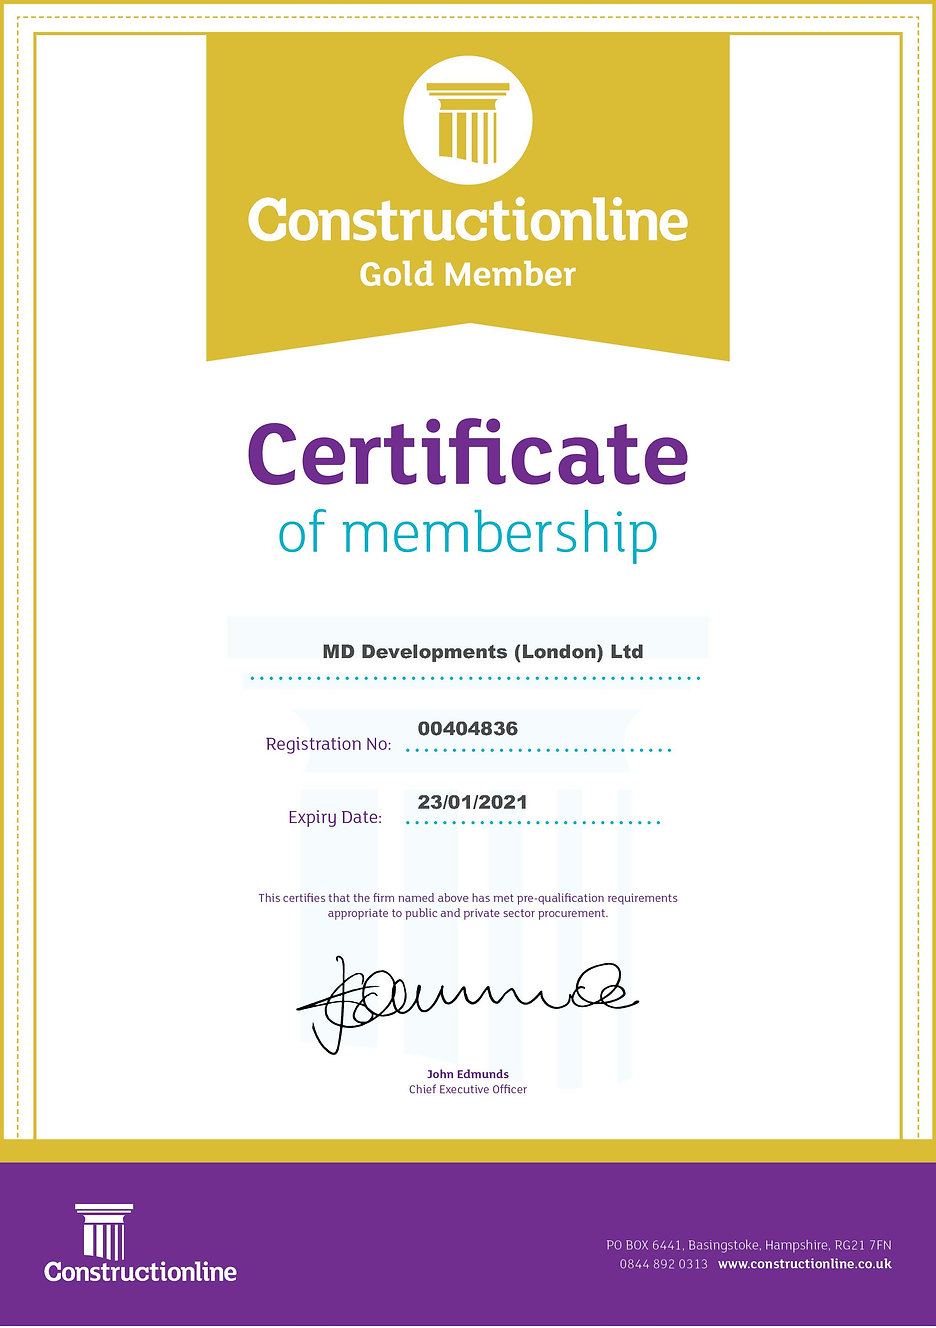 Constructionline Gold Certificate 230121